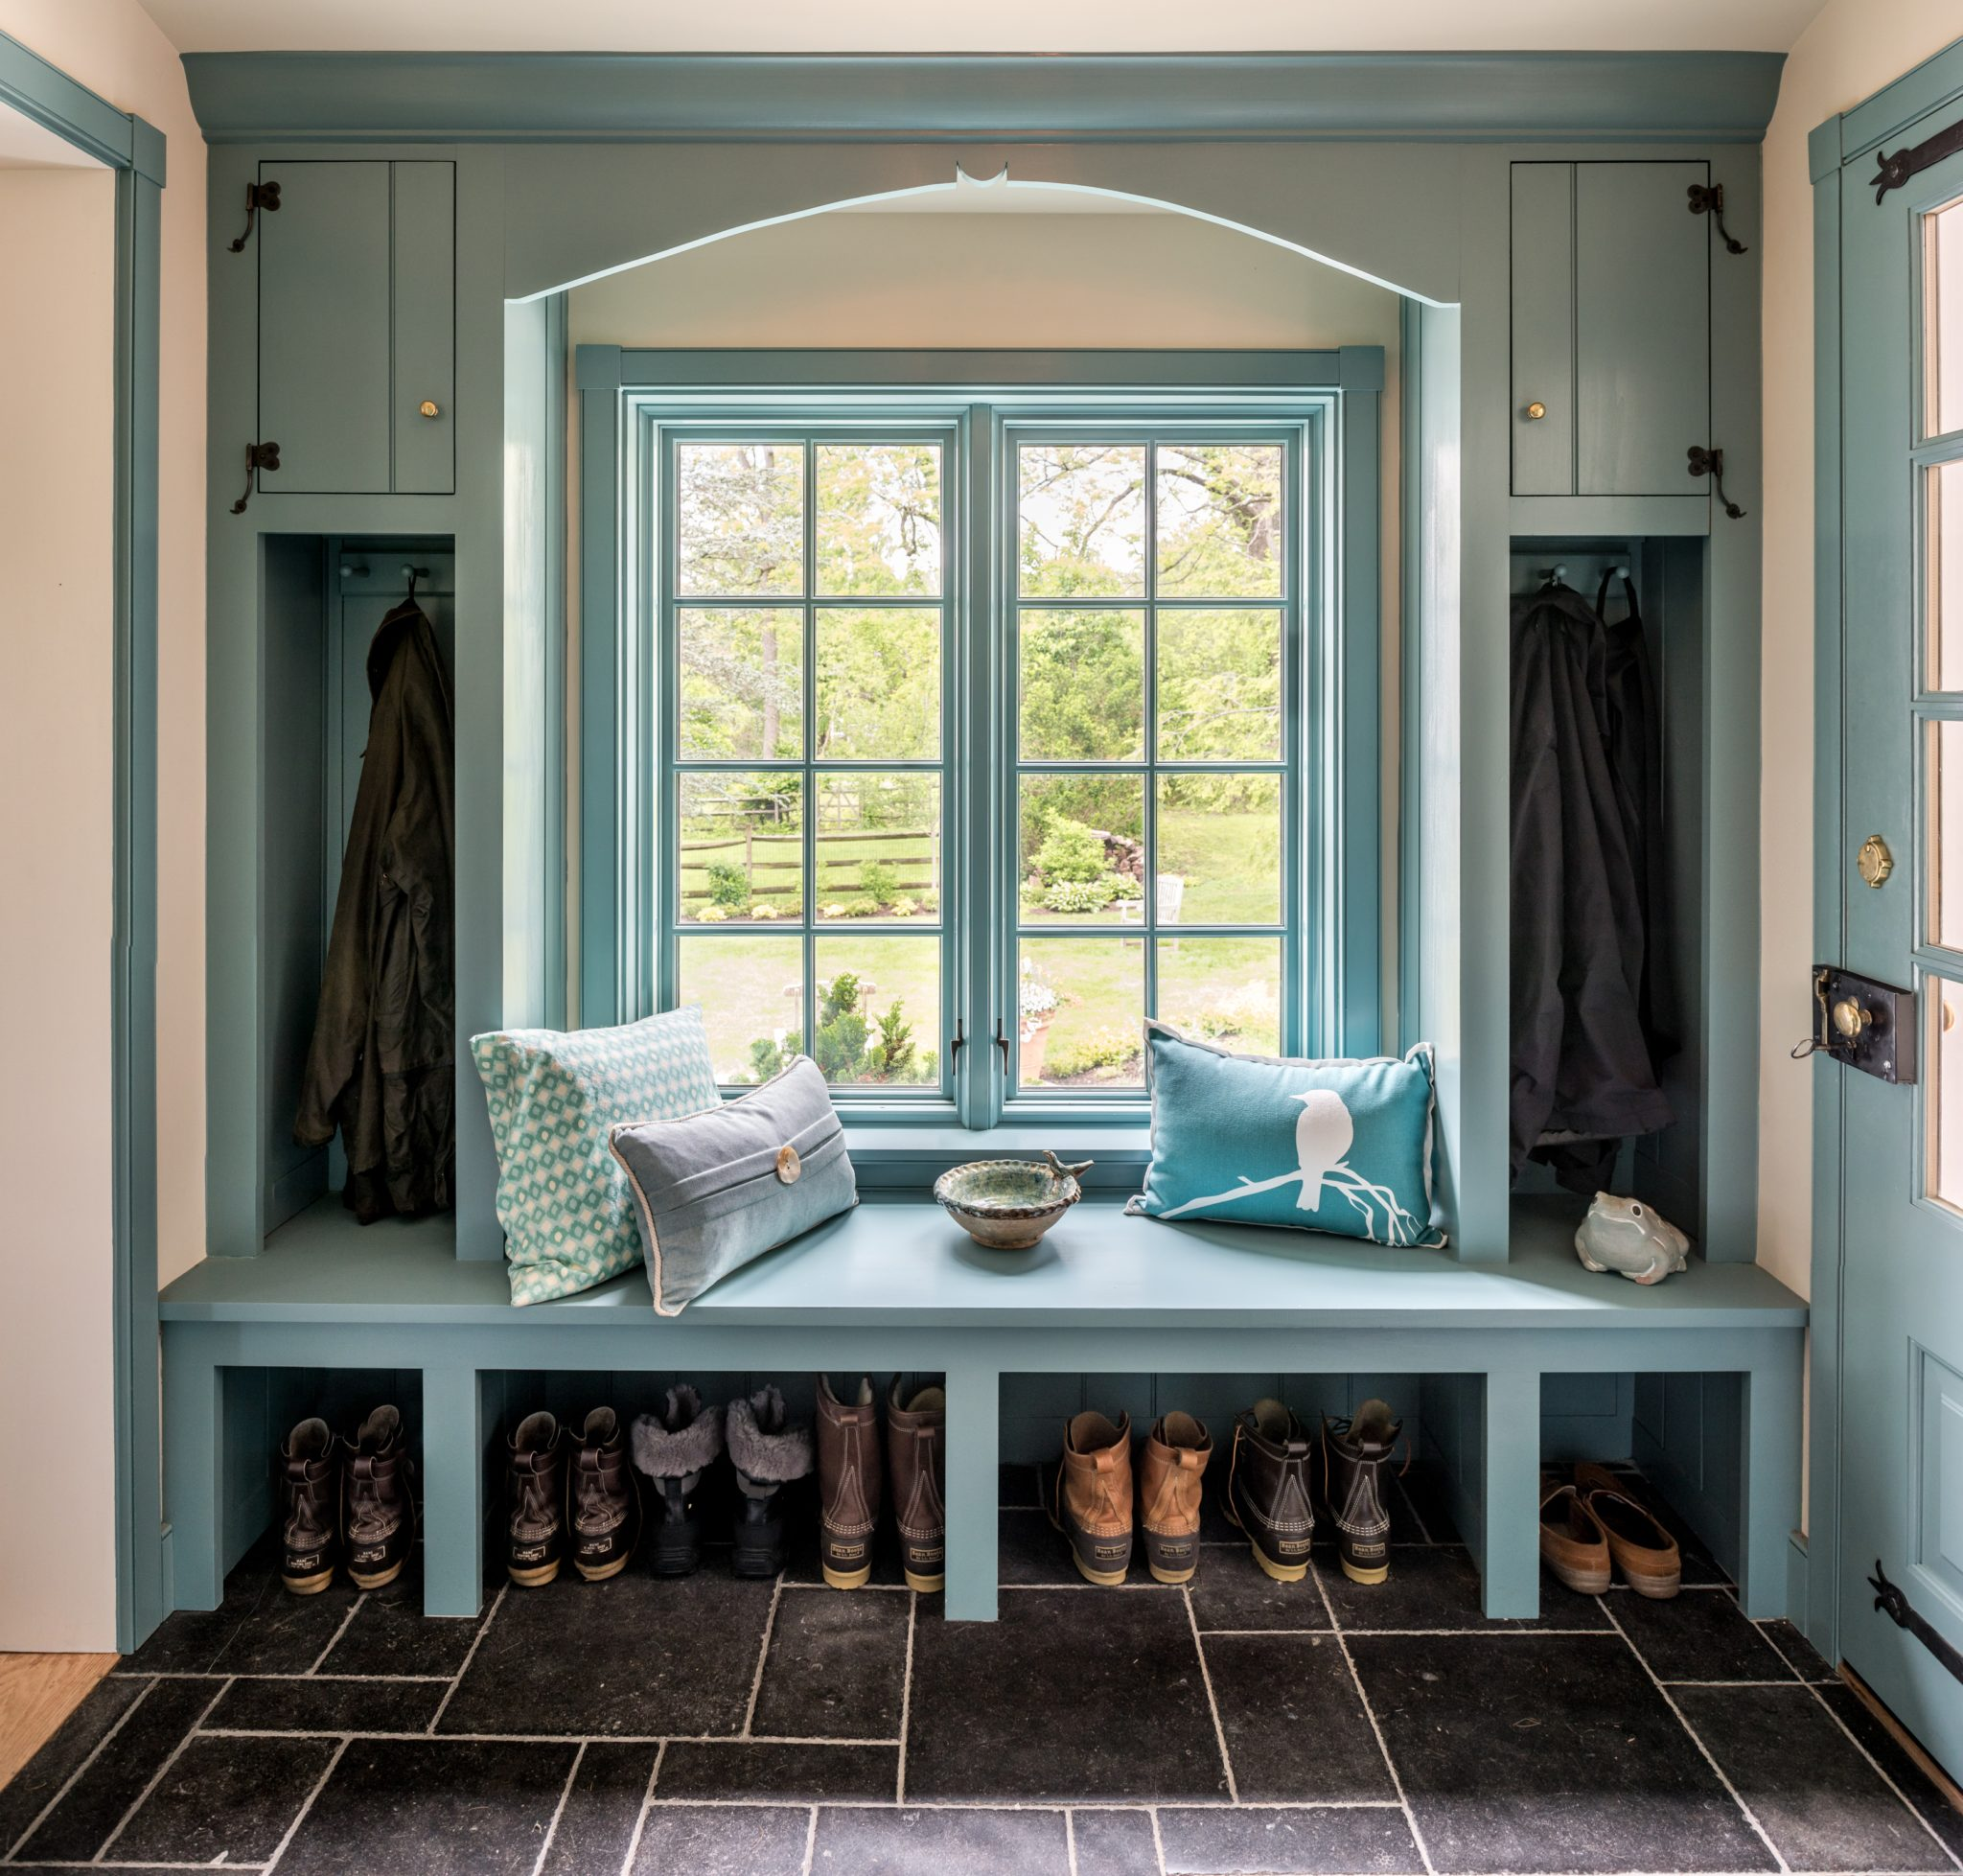 Blue mudroom addition with farmhouse details in Berwyn, Pennsylvania by Period Architecture